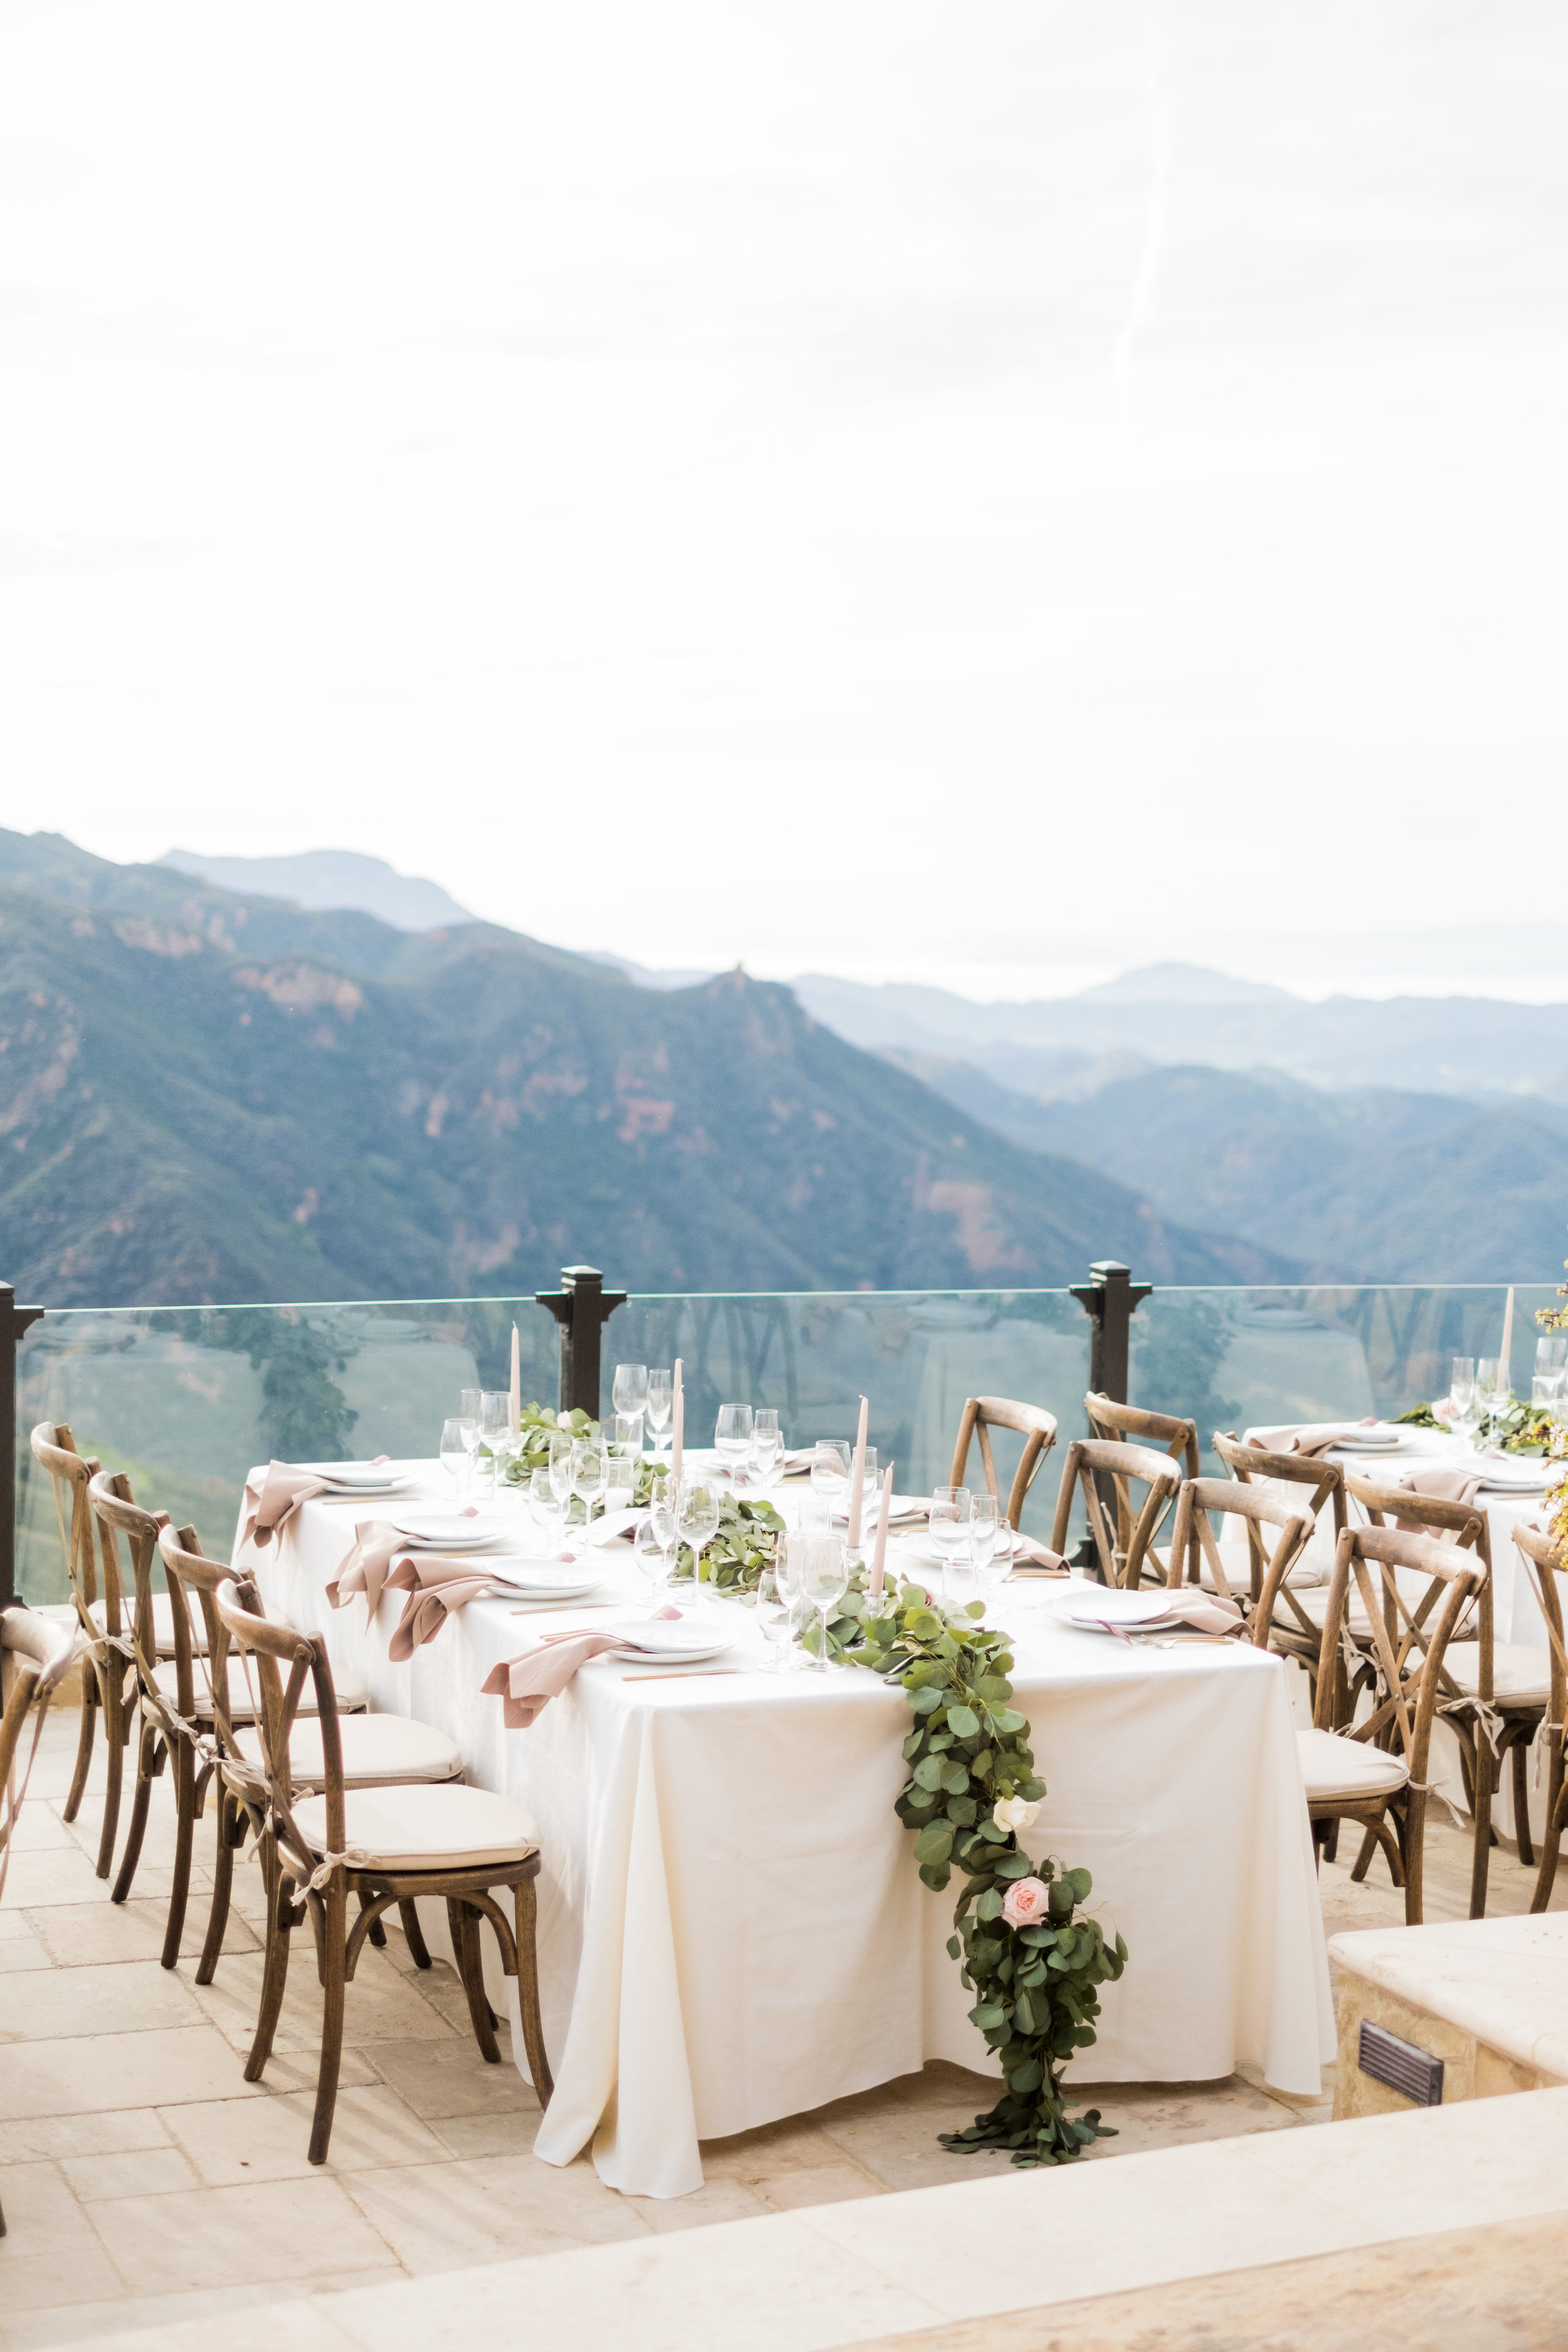 Spring Wedding at Romantic Hilltop Vineyard Malibu Rocky Oaks Sally Pinera Finding Flora Garland Greenery Reception Decor So Happi Together